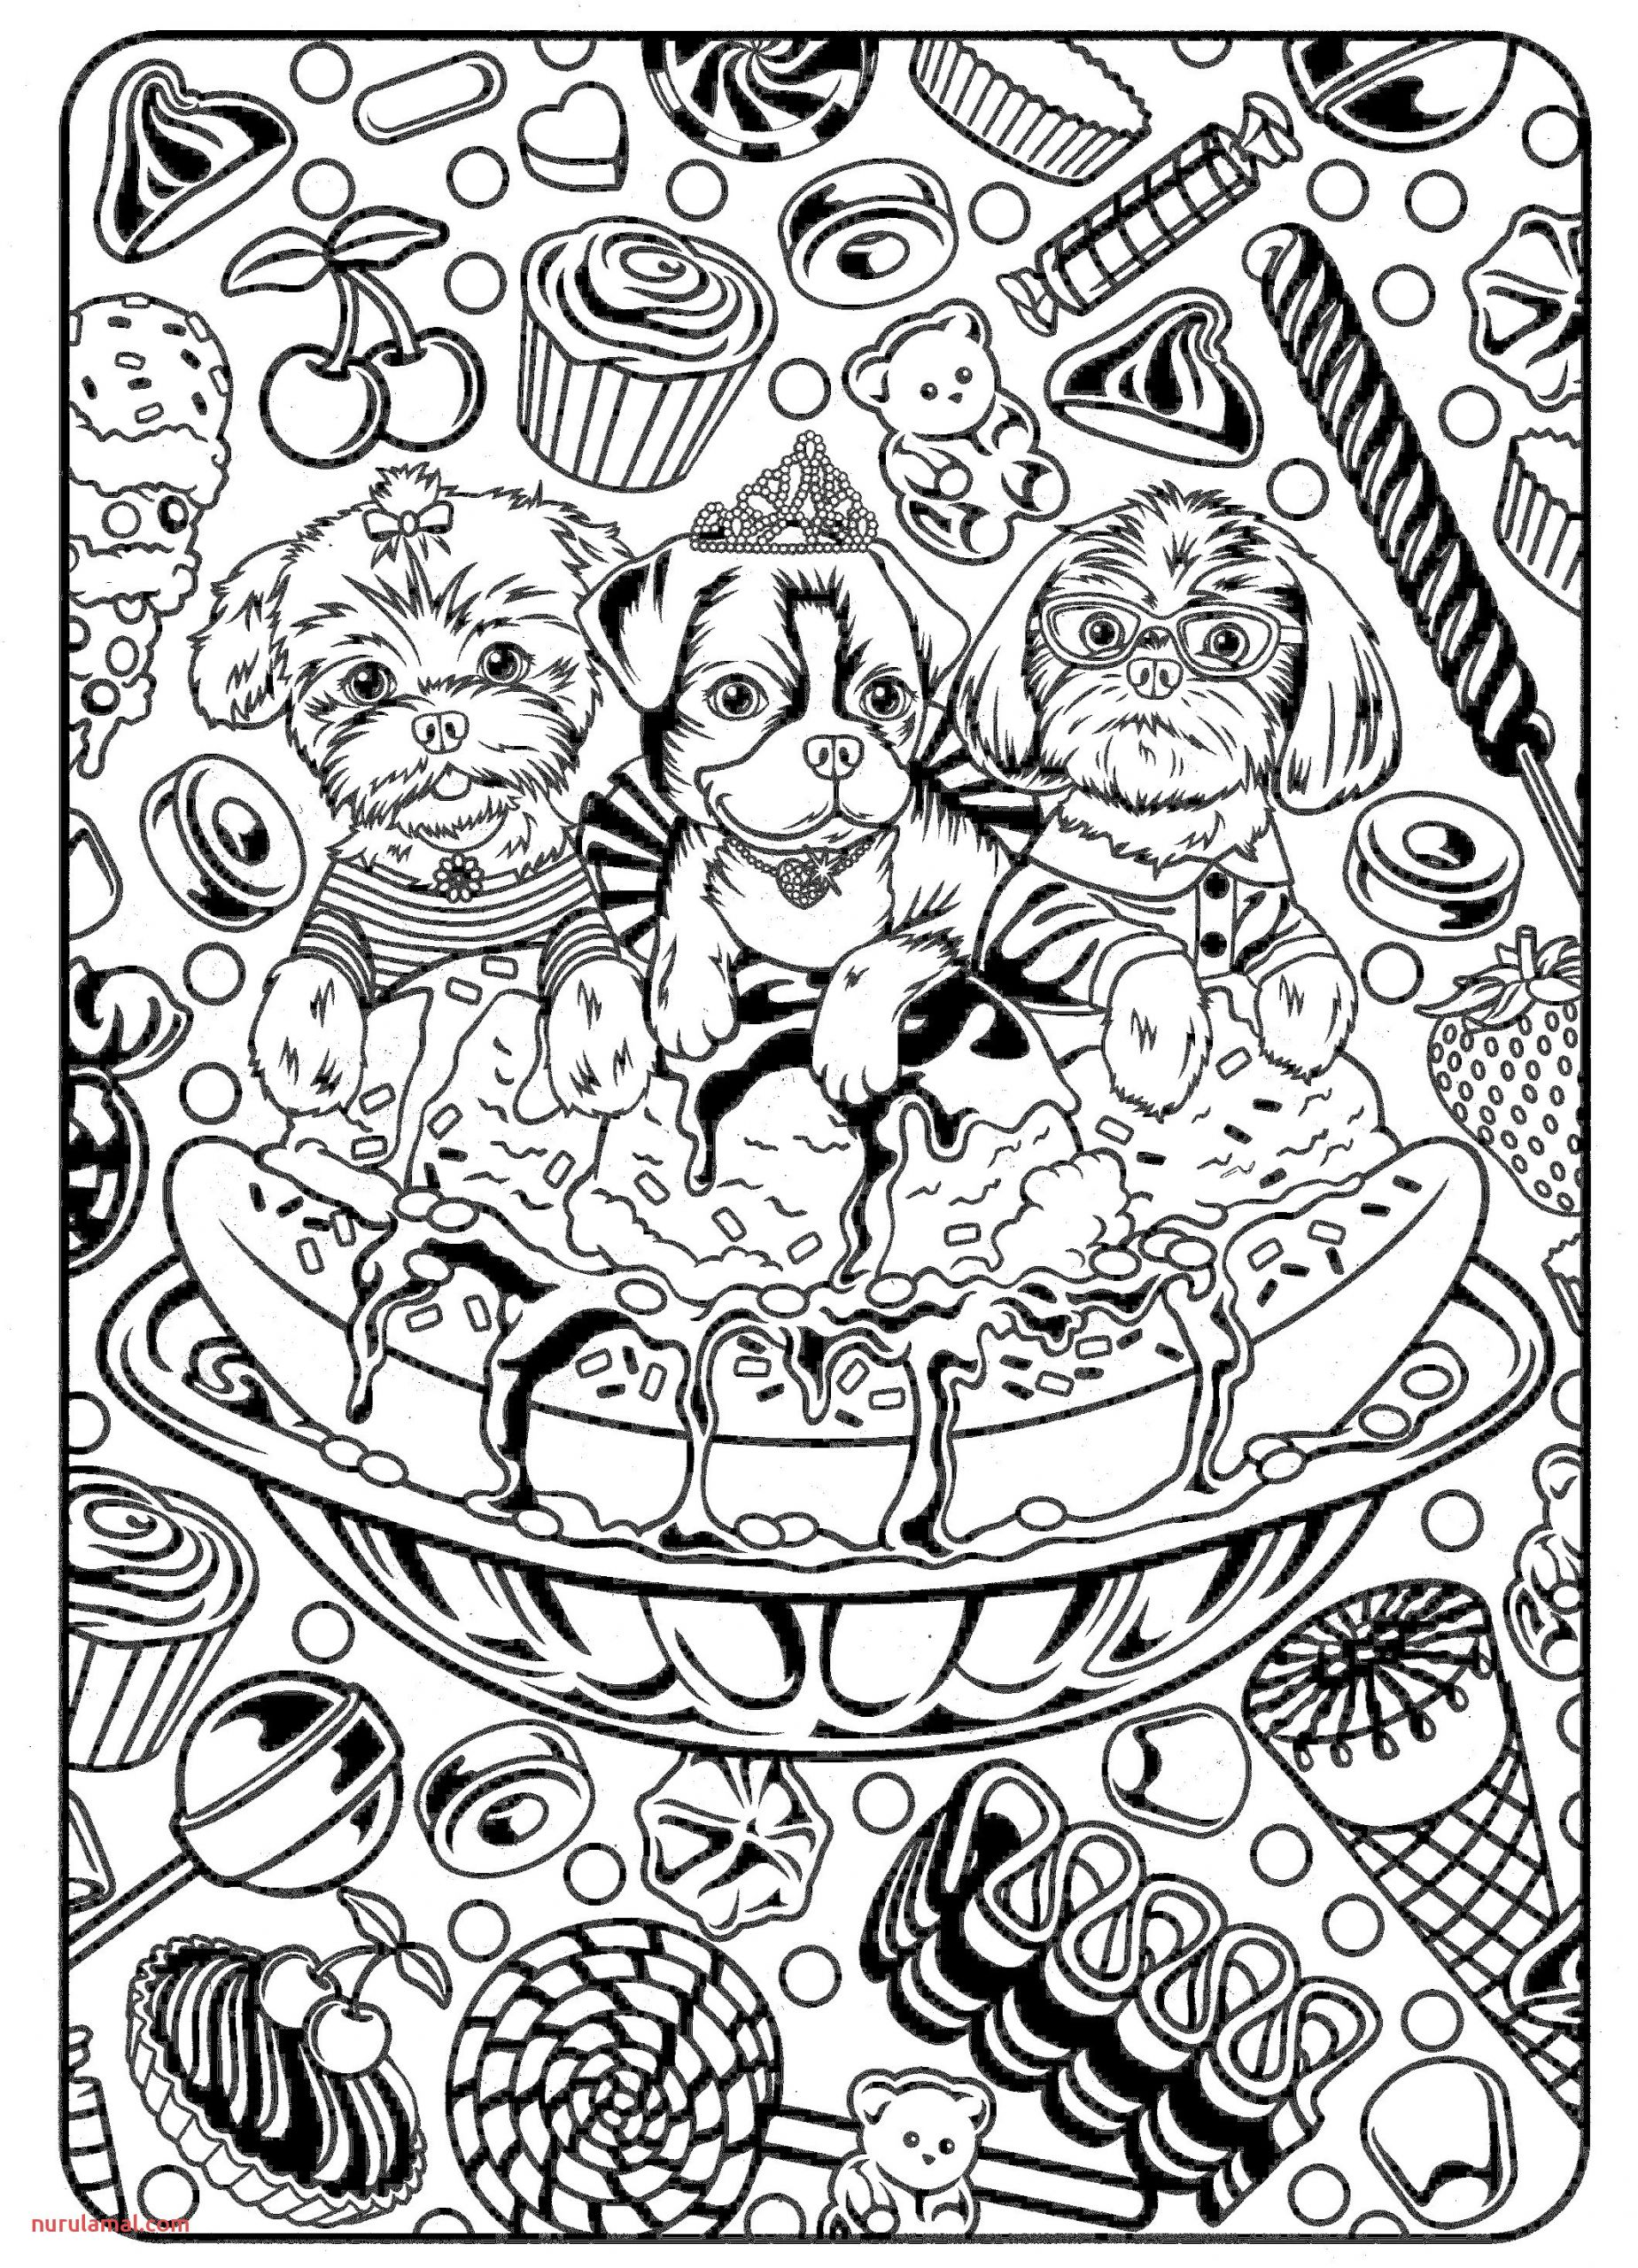 Free Printable Coloring Pages for Labor Day Pusat Hobi